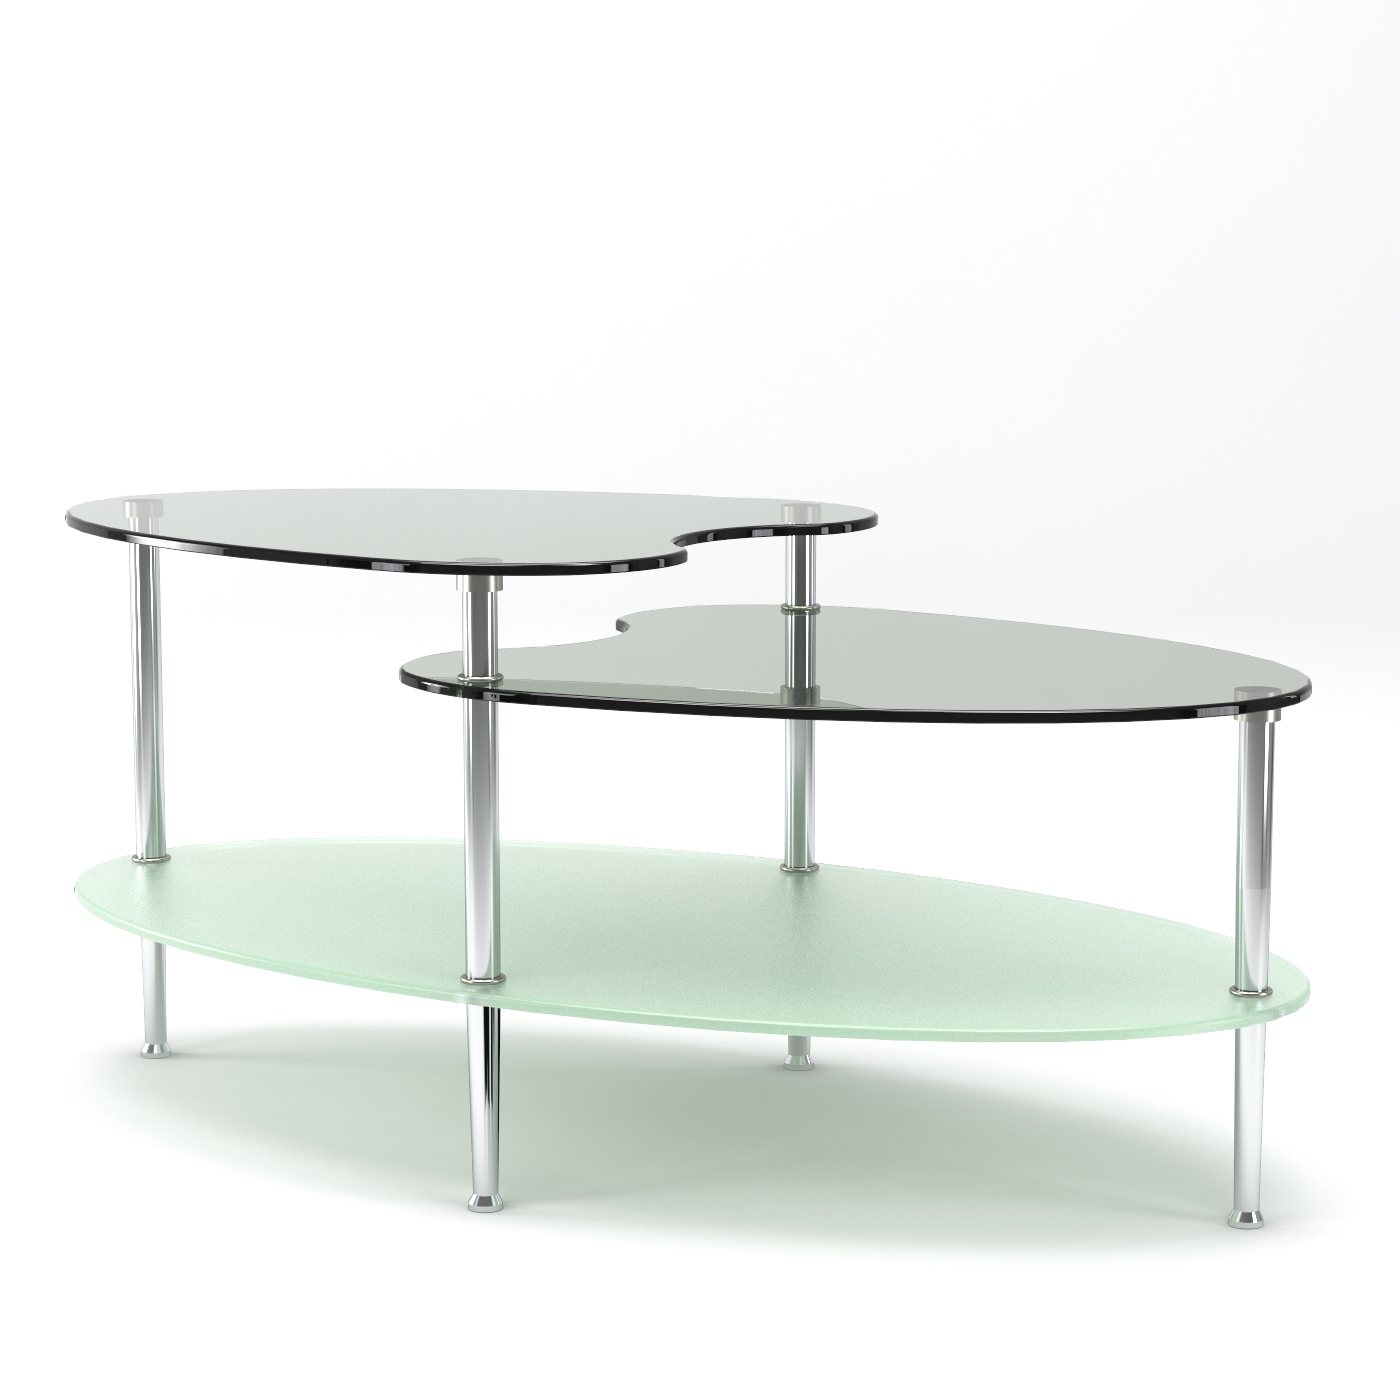 Oval Coffee Table With Shelf.Becca 38 Inch Oval Two Tier Glass Coffee Table